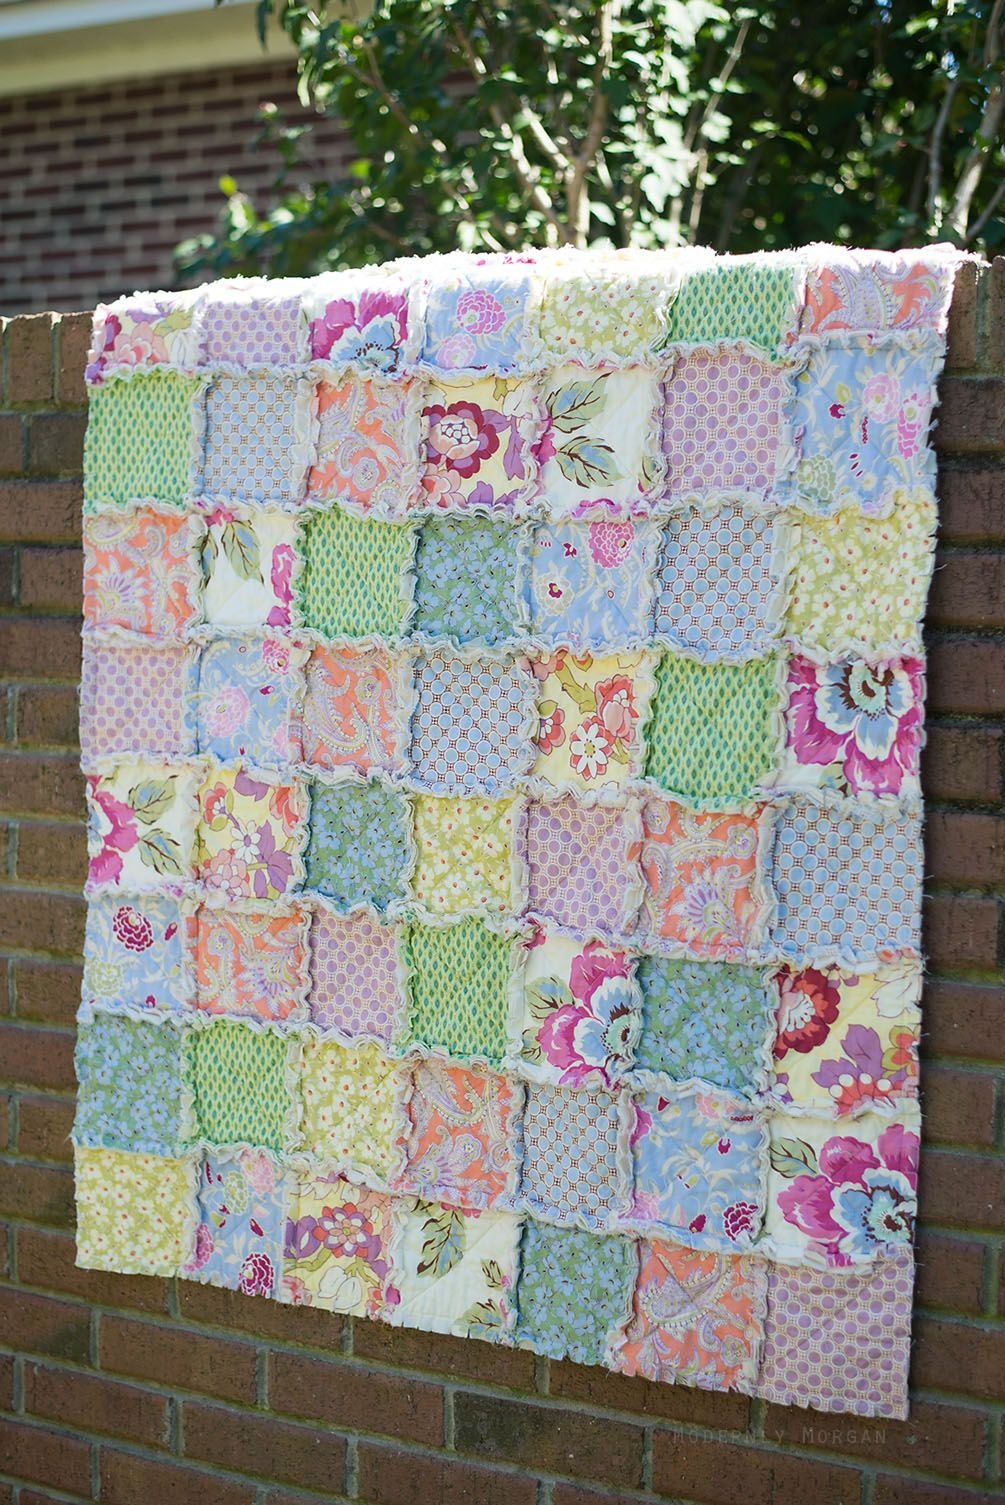 be projects quilts beginner pin quilt would and quick sewing great as the all perfect fast for free quilting these are patterns well